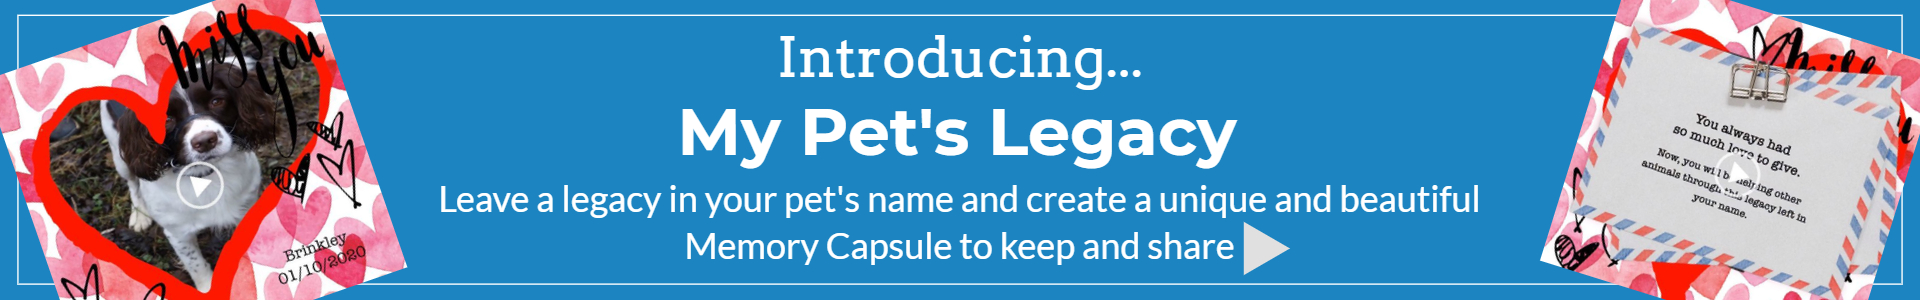 My Pet's Legacy homepage banner